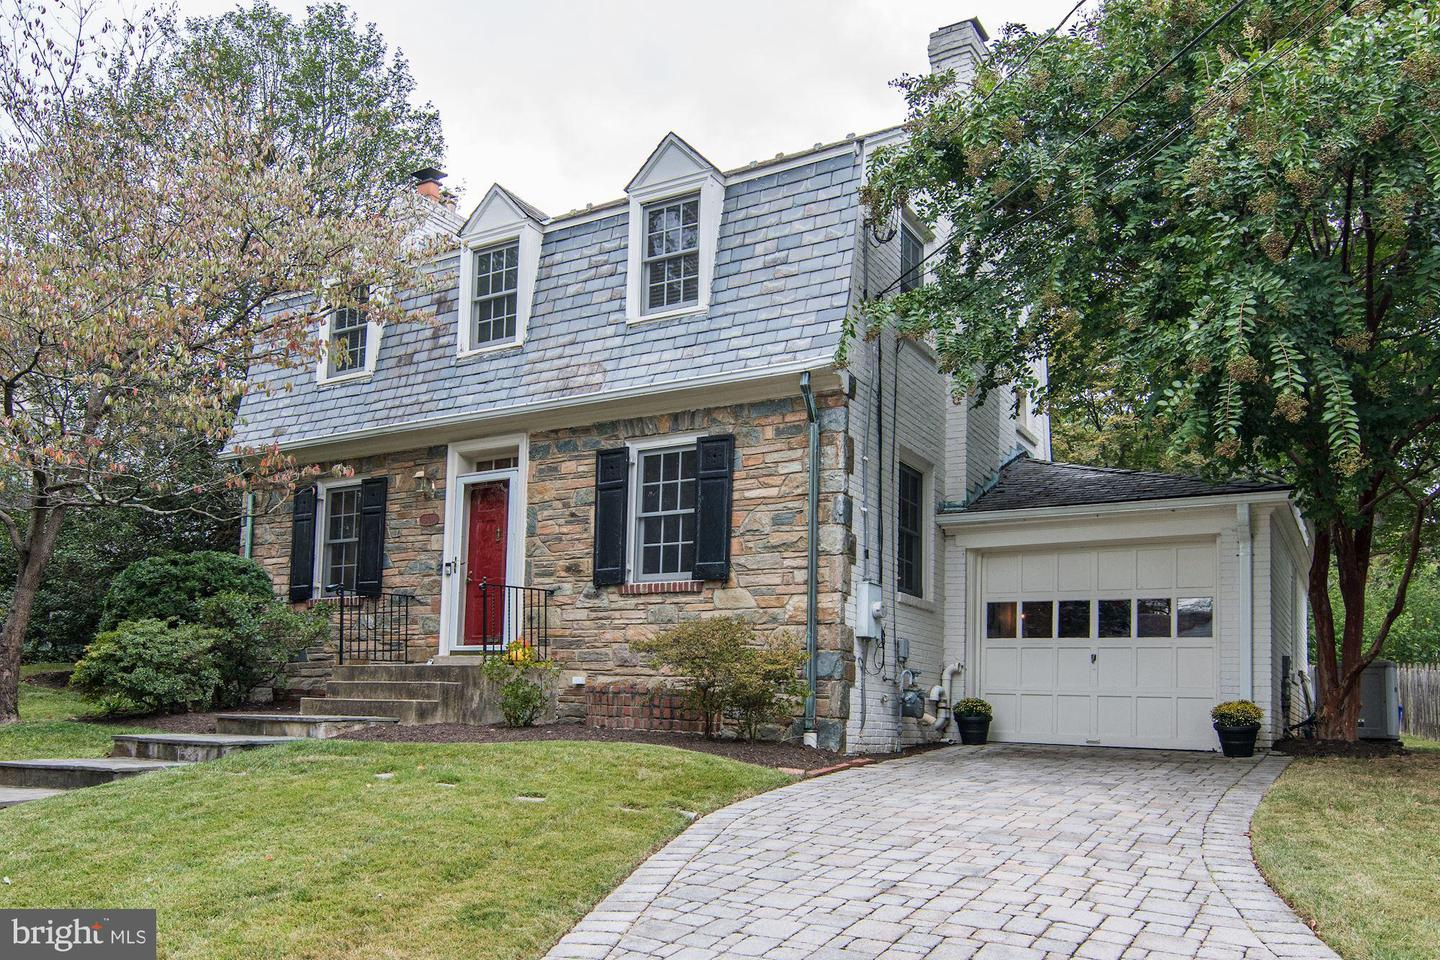 6700 MELVILLE PLACE, CHEVY CHASE, Maryland